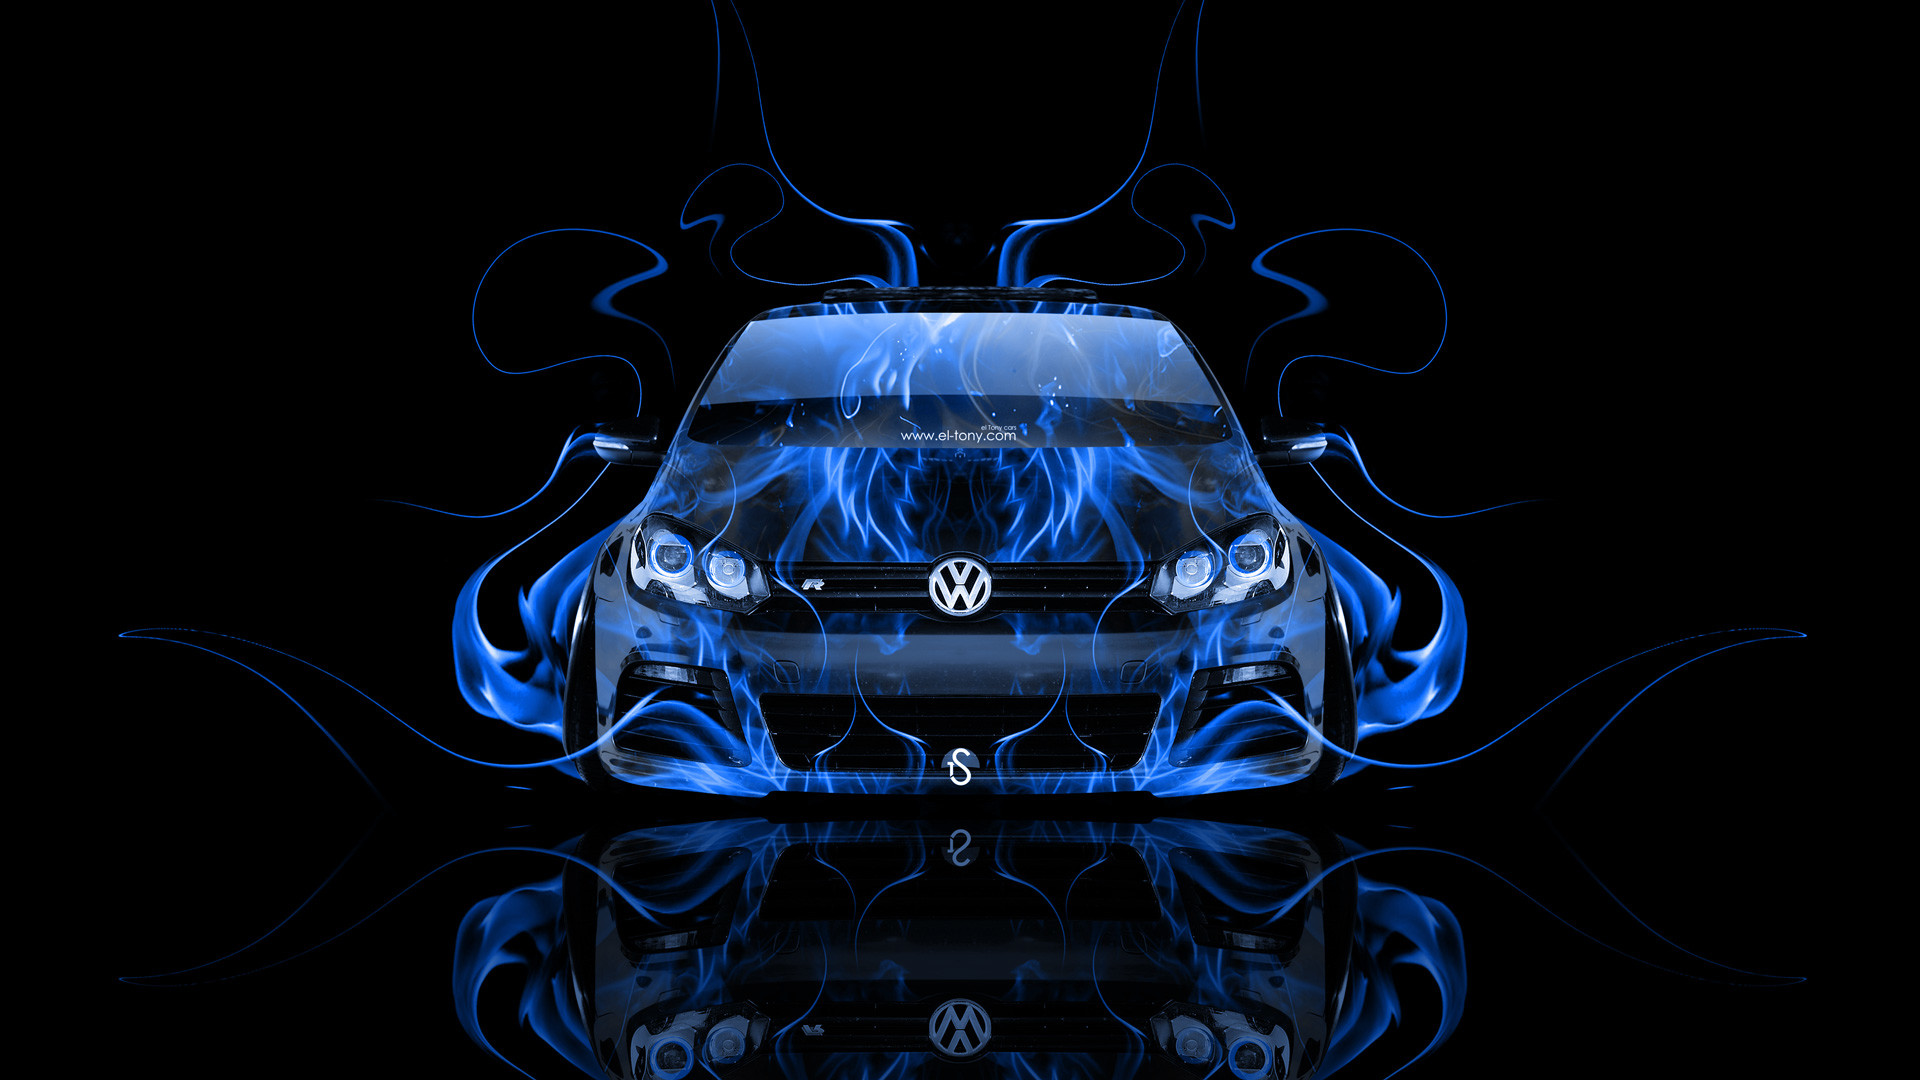 Volkswagen-Golf-R-Front-Blue-Fire-Abstract-Car-